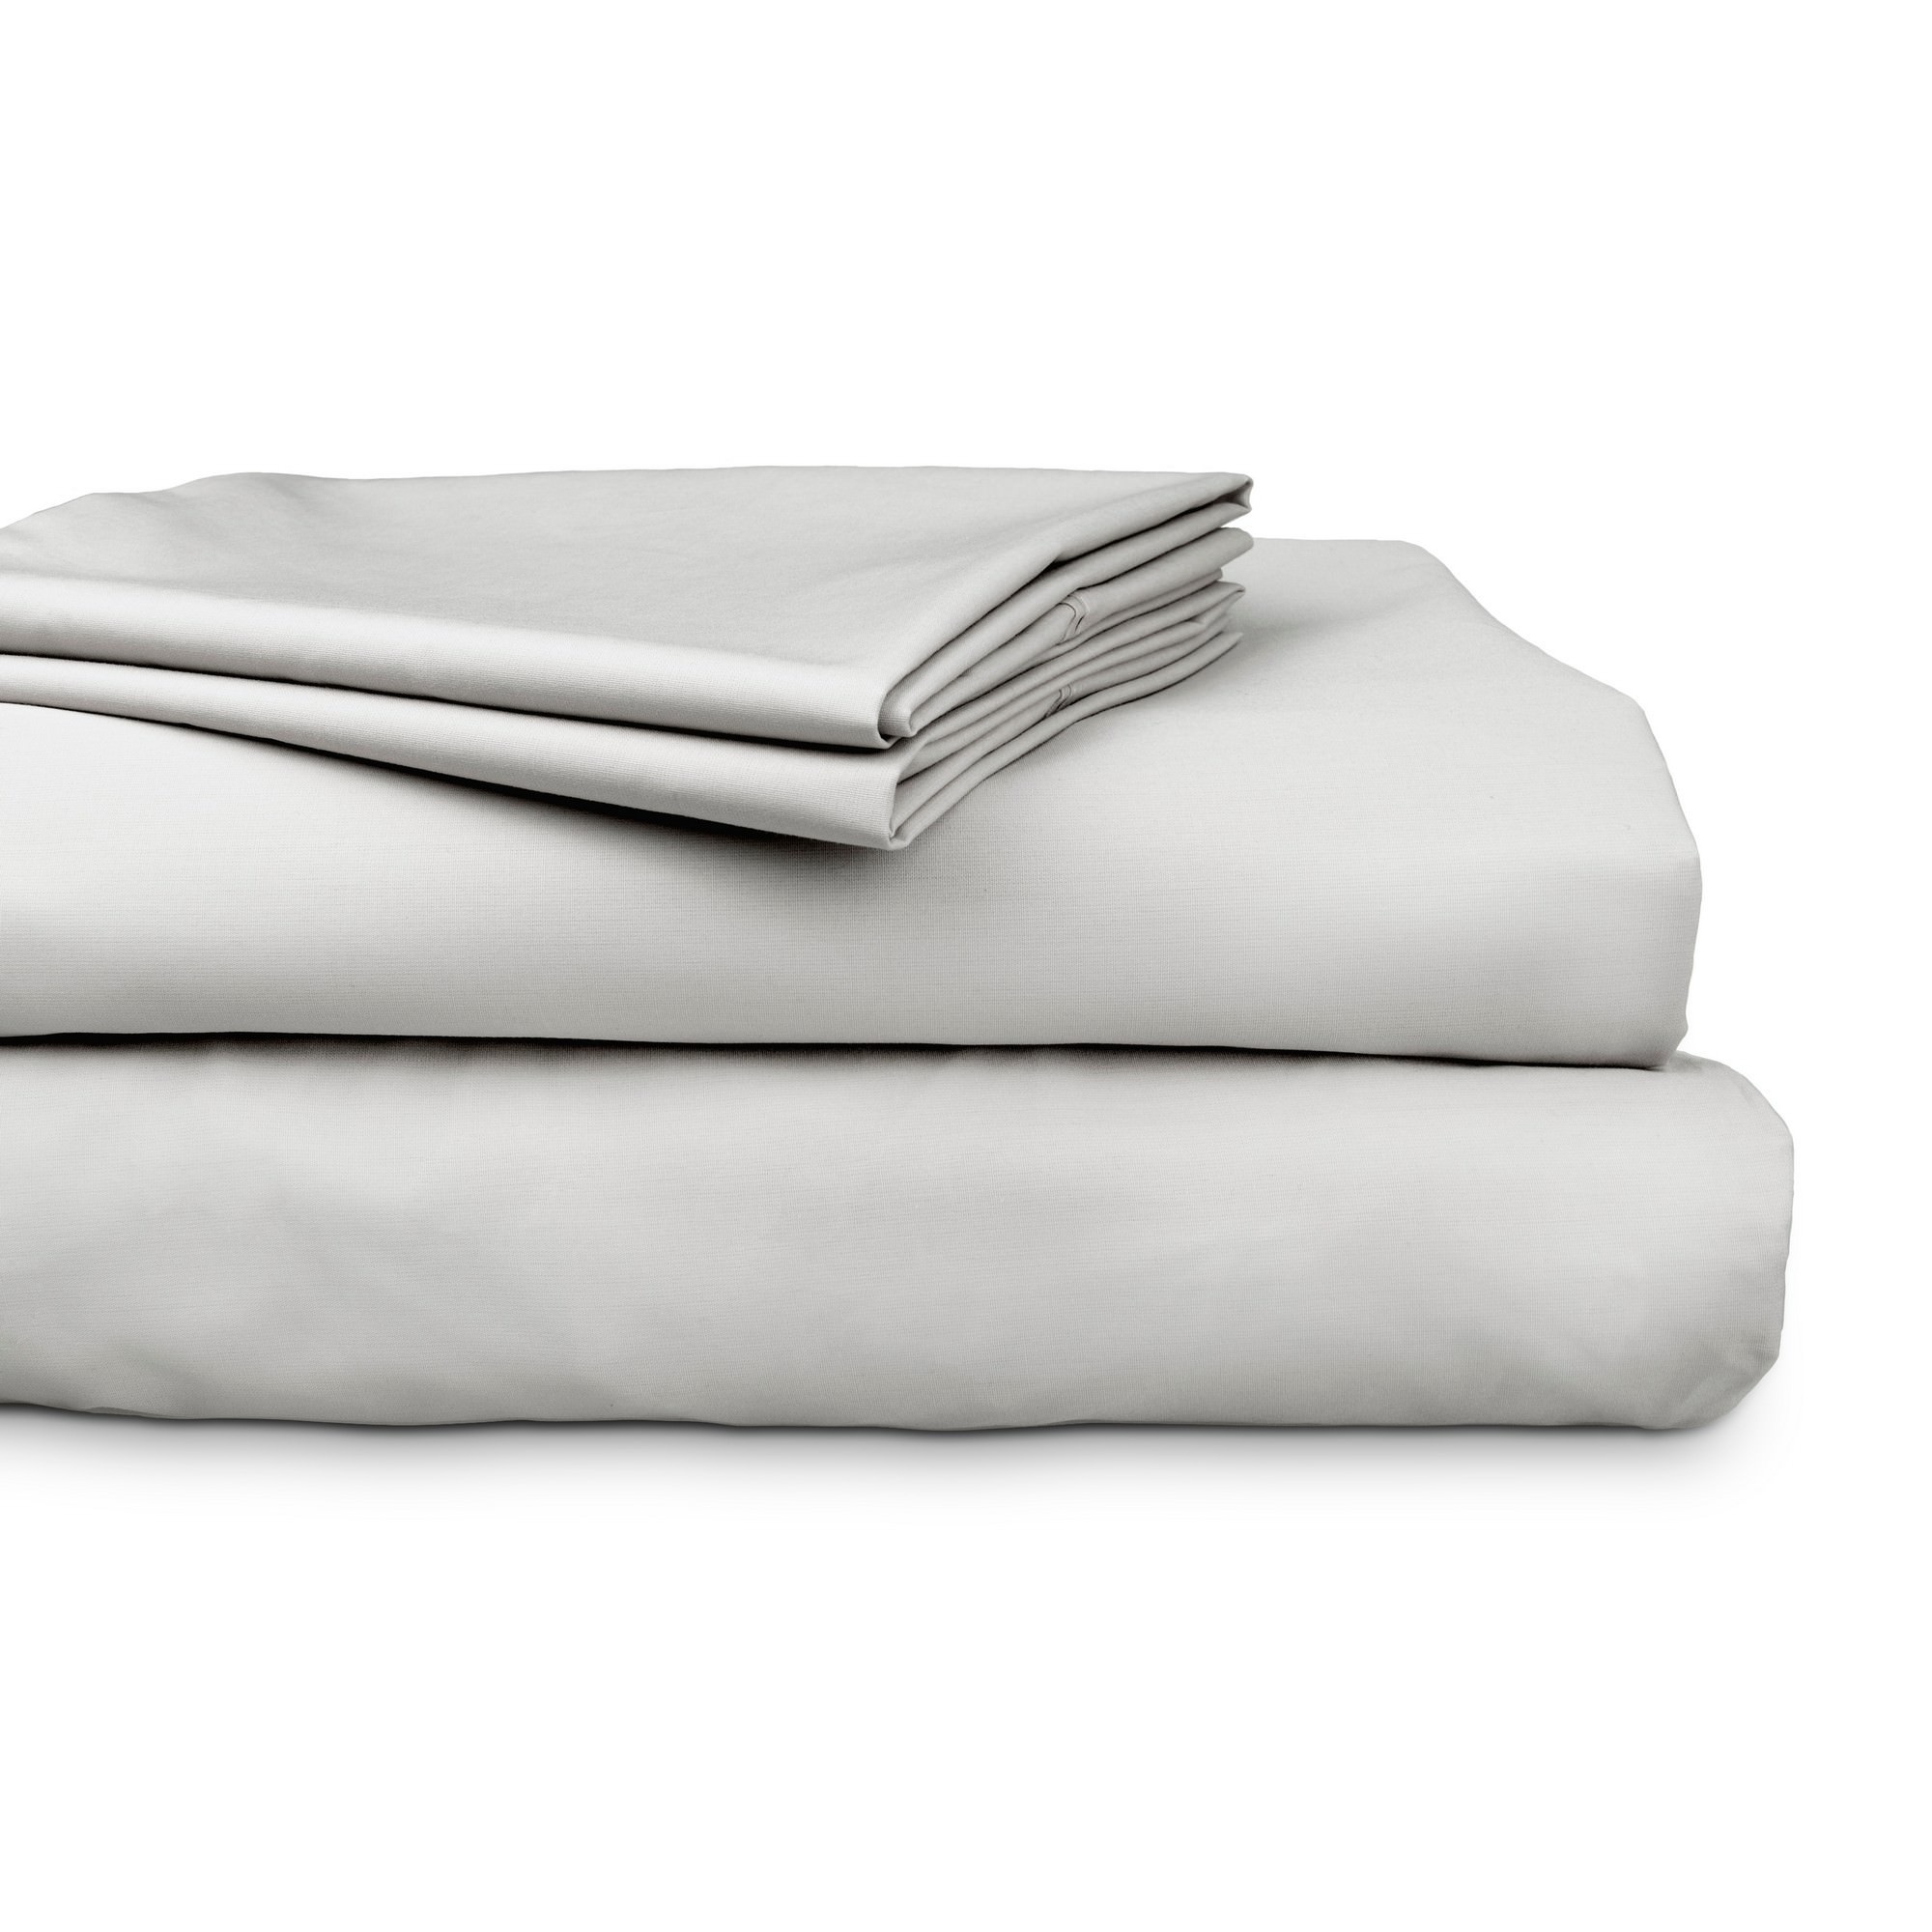 Ajee 4 Piece 300TC Cotton Sheet Set, Queen, Silver